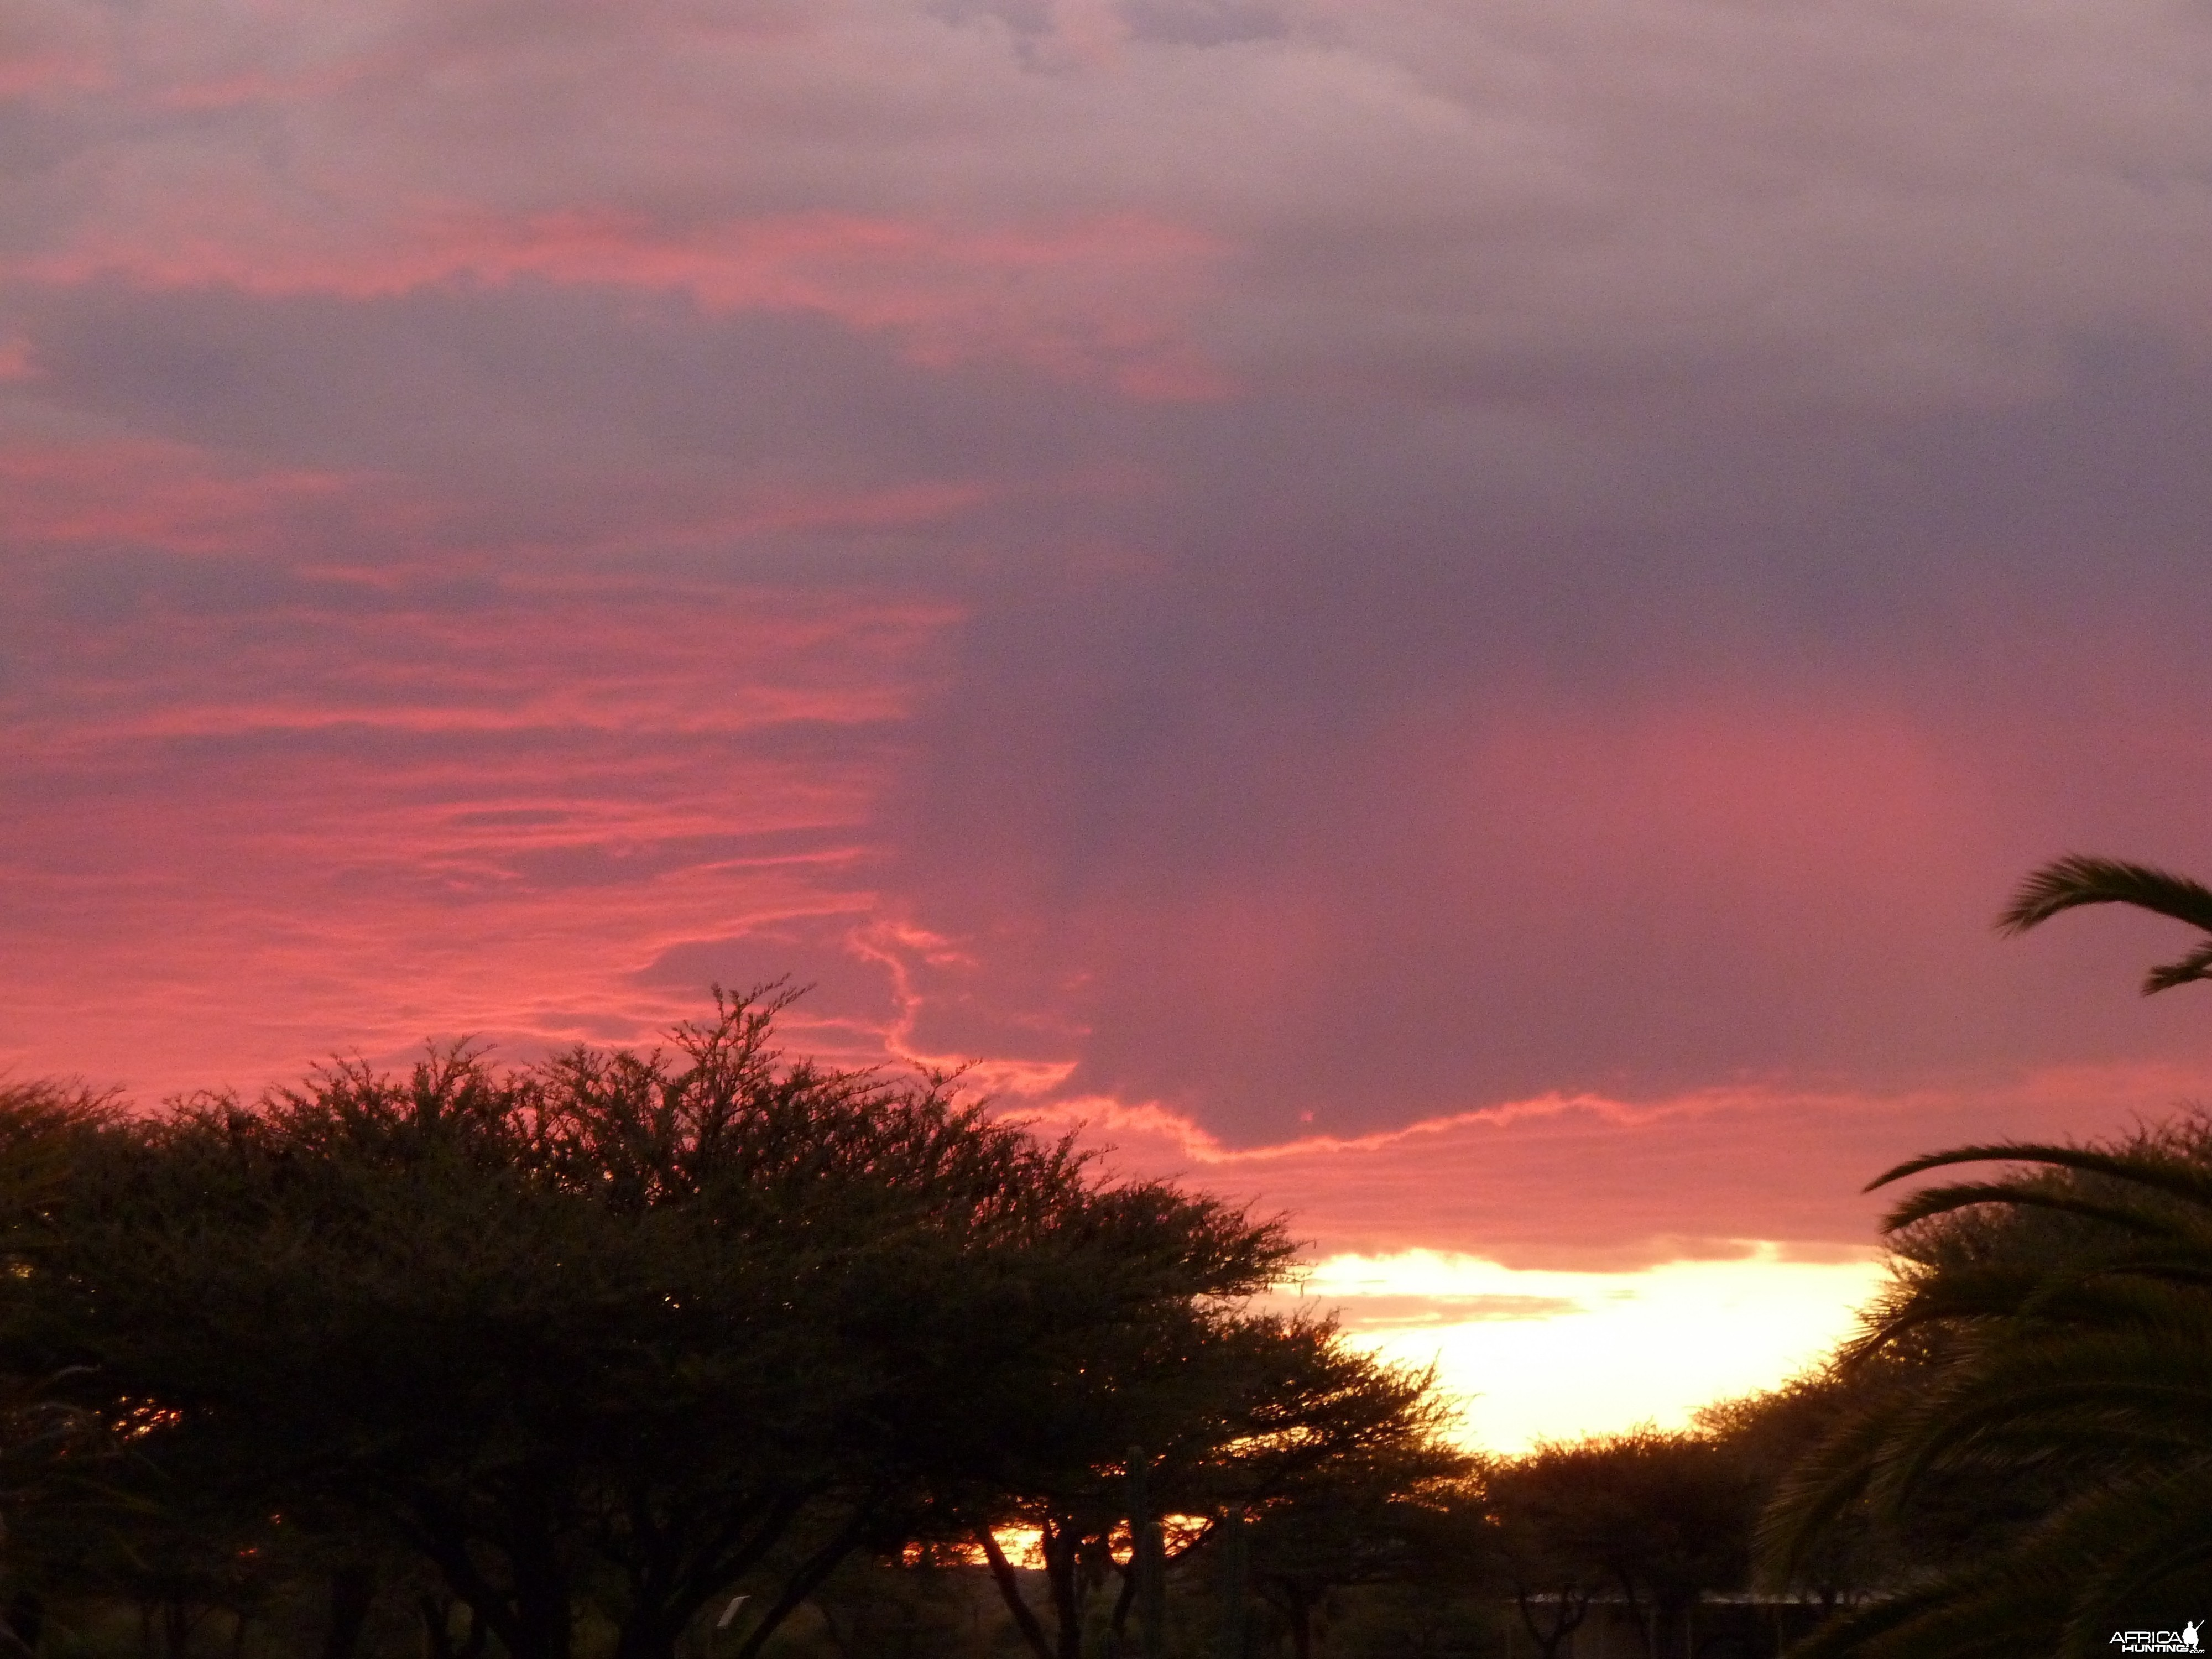 Sunset at Ozondjahe Hunting Safaris in Namibia